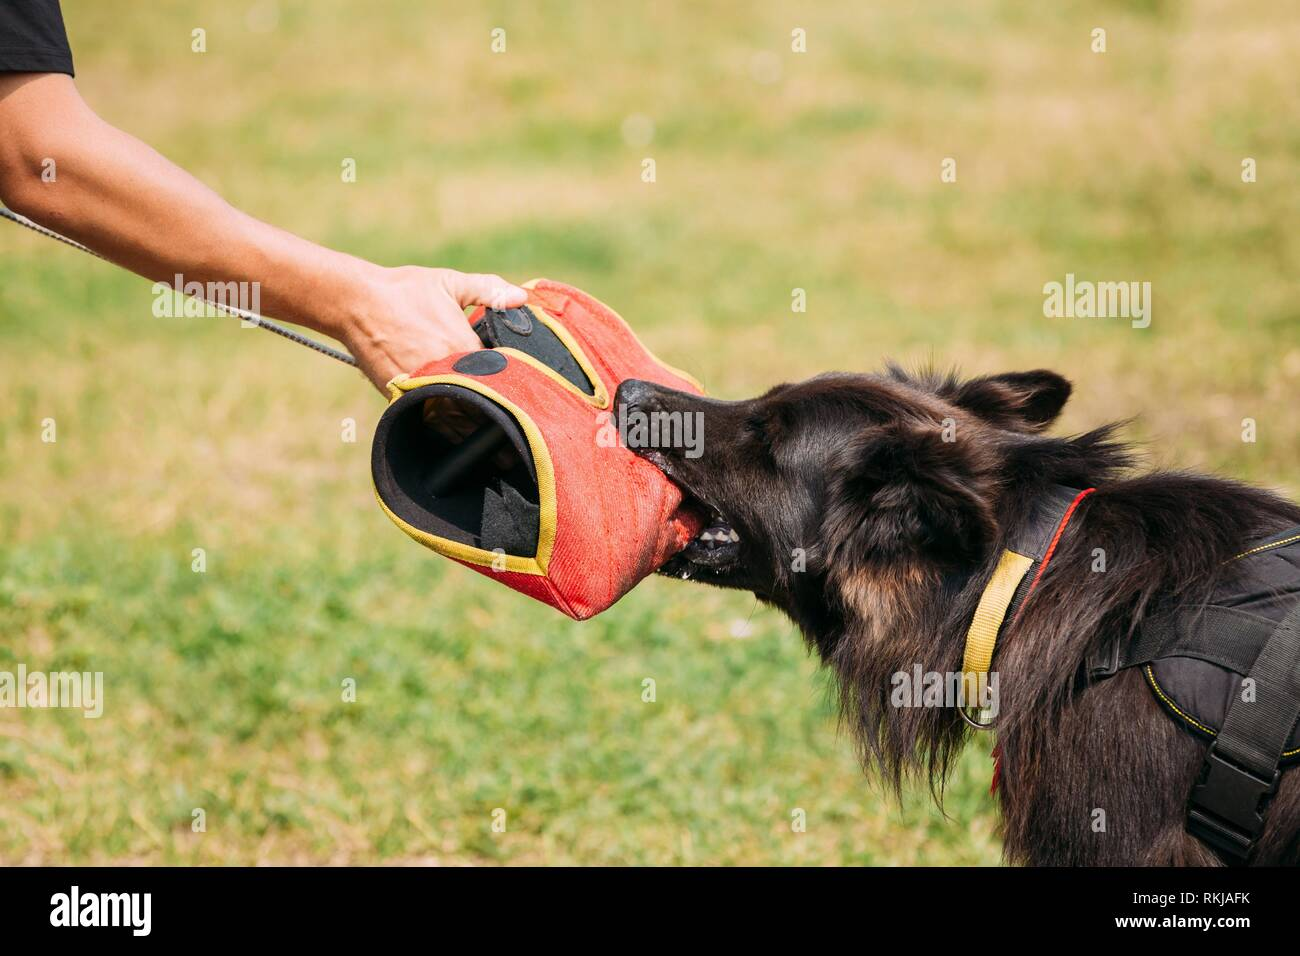 The Scene Of Training Of Purebred Long-Haired German Shepherd Adult Dog Or Alsatian Wolf Dog. Attack And Strong Grip To Training Glove Of Trainer. - Stock Image